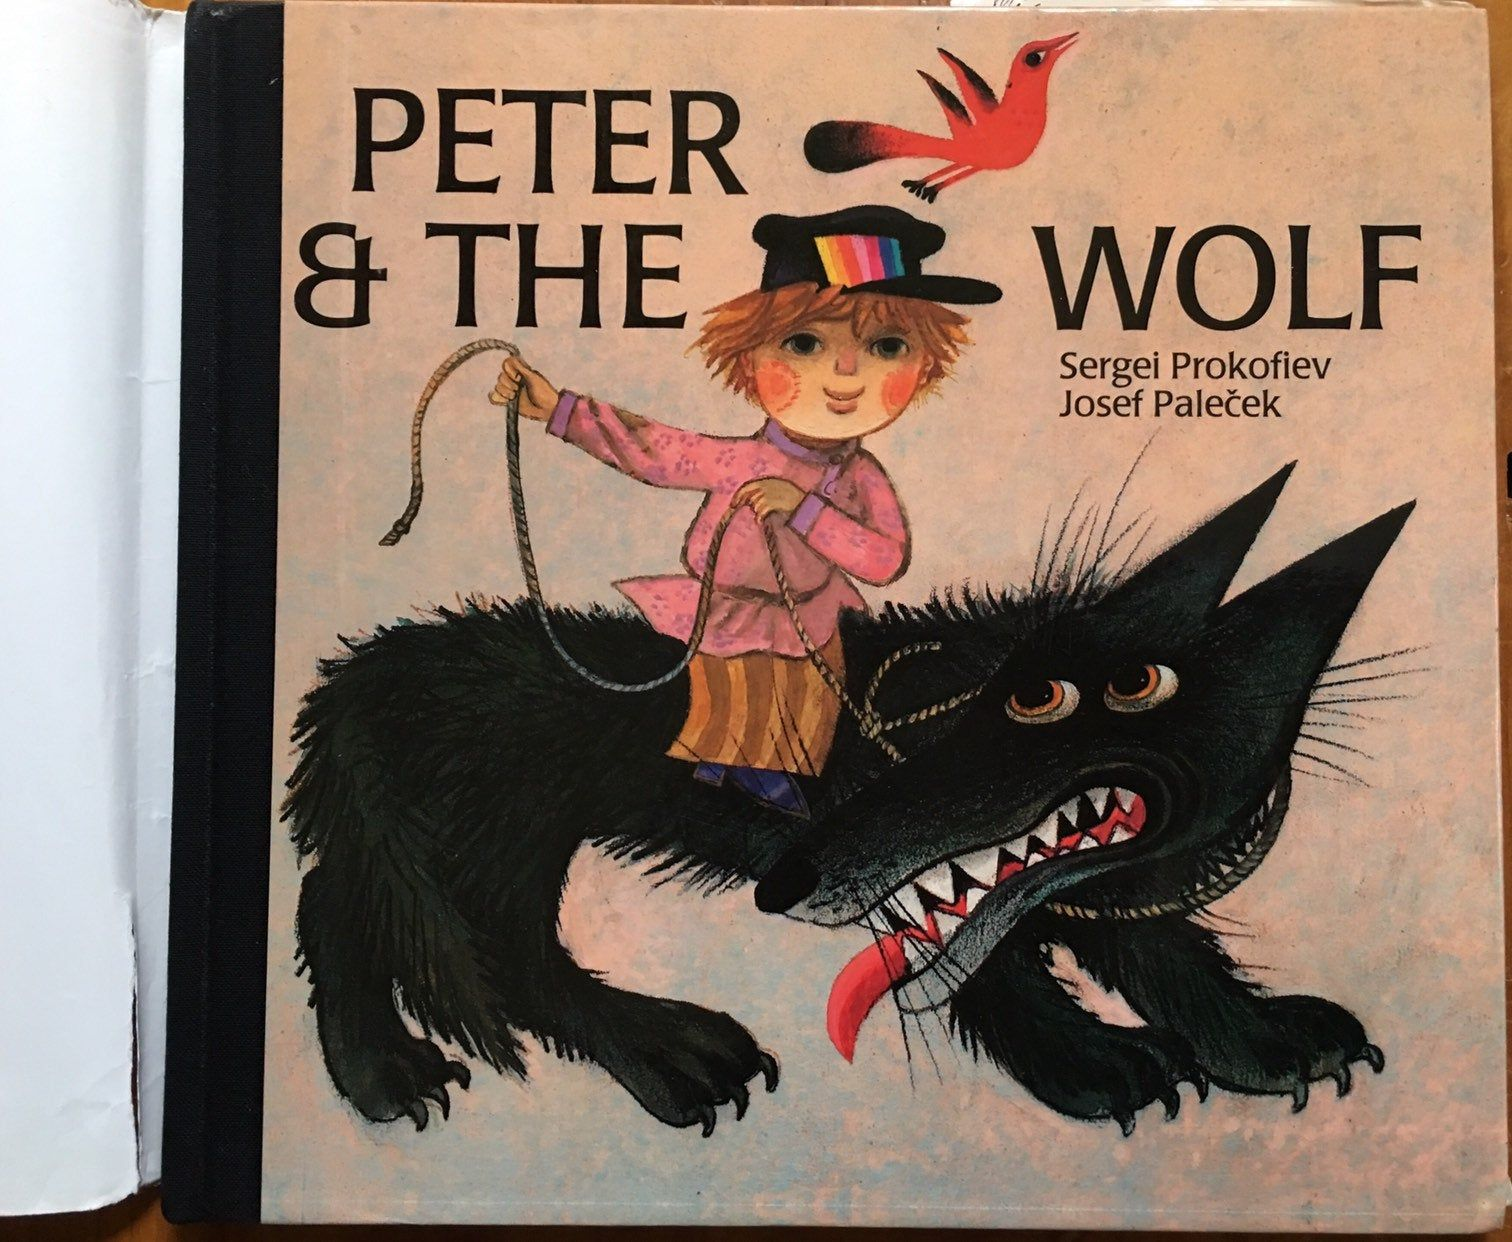 Peter and the Wolf, Sergei Prokofiev, illustrated by Josef